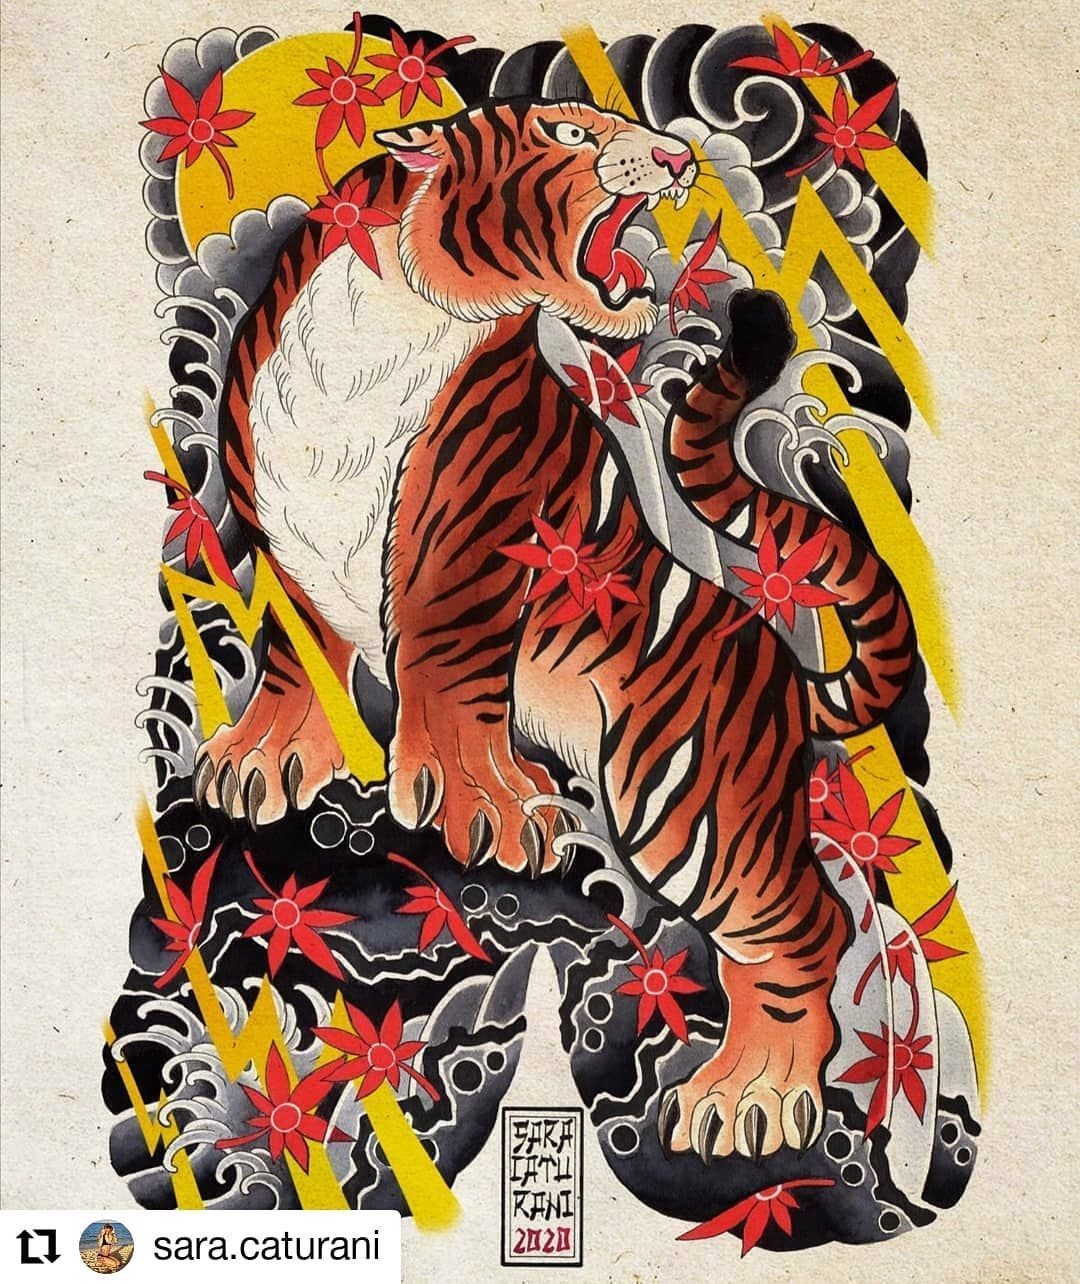 "Ace Sw4g Clothing trên Instagram: ""🐅 Majestic Tiger King 💪 Nothing can beat pride and confident Do you carry those strengths? ⬇️⬇️⬇️ #Sw4gClothing . . . . Credit…"""